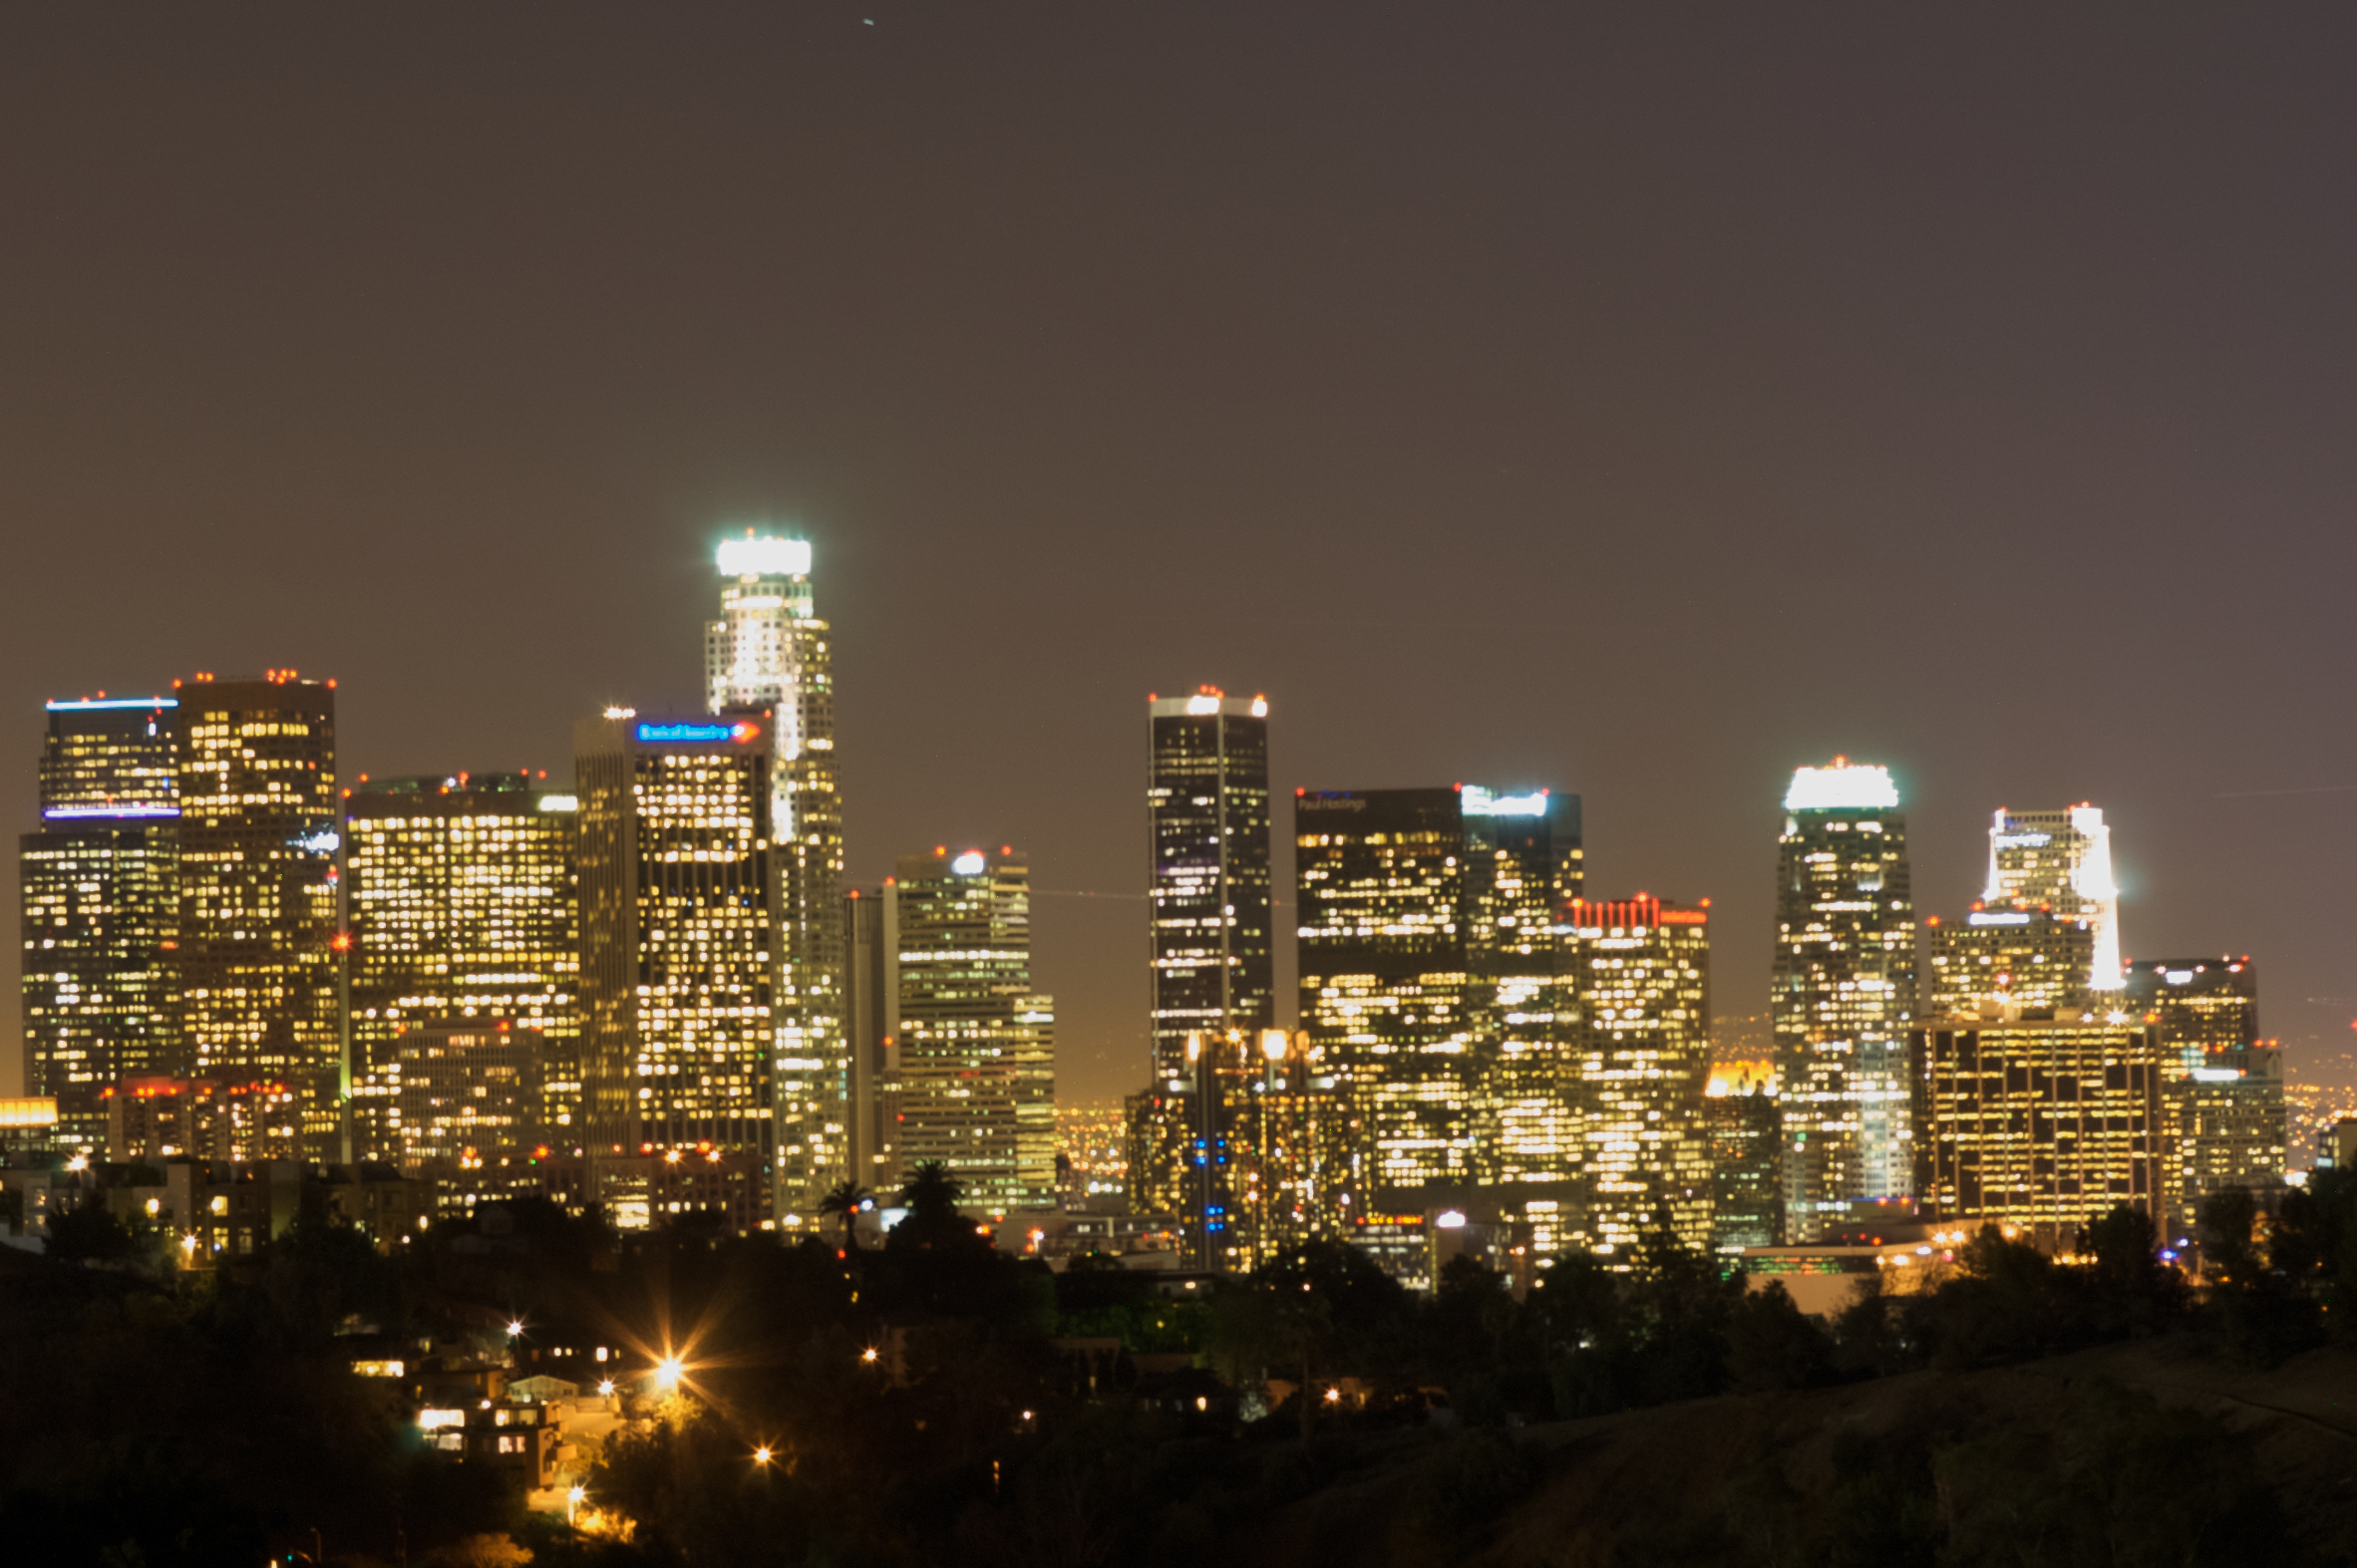 los Angeles skyline at HD Wallpaper